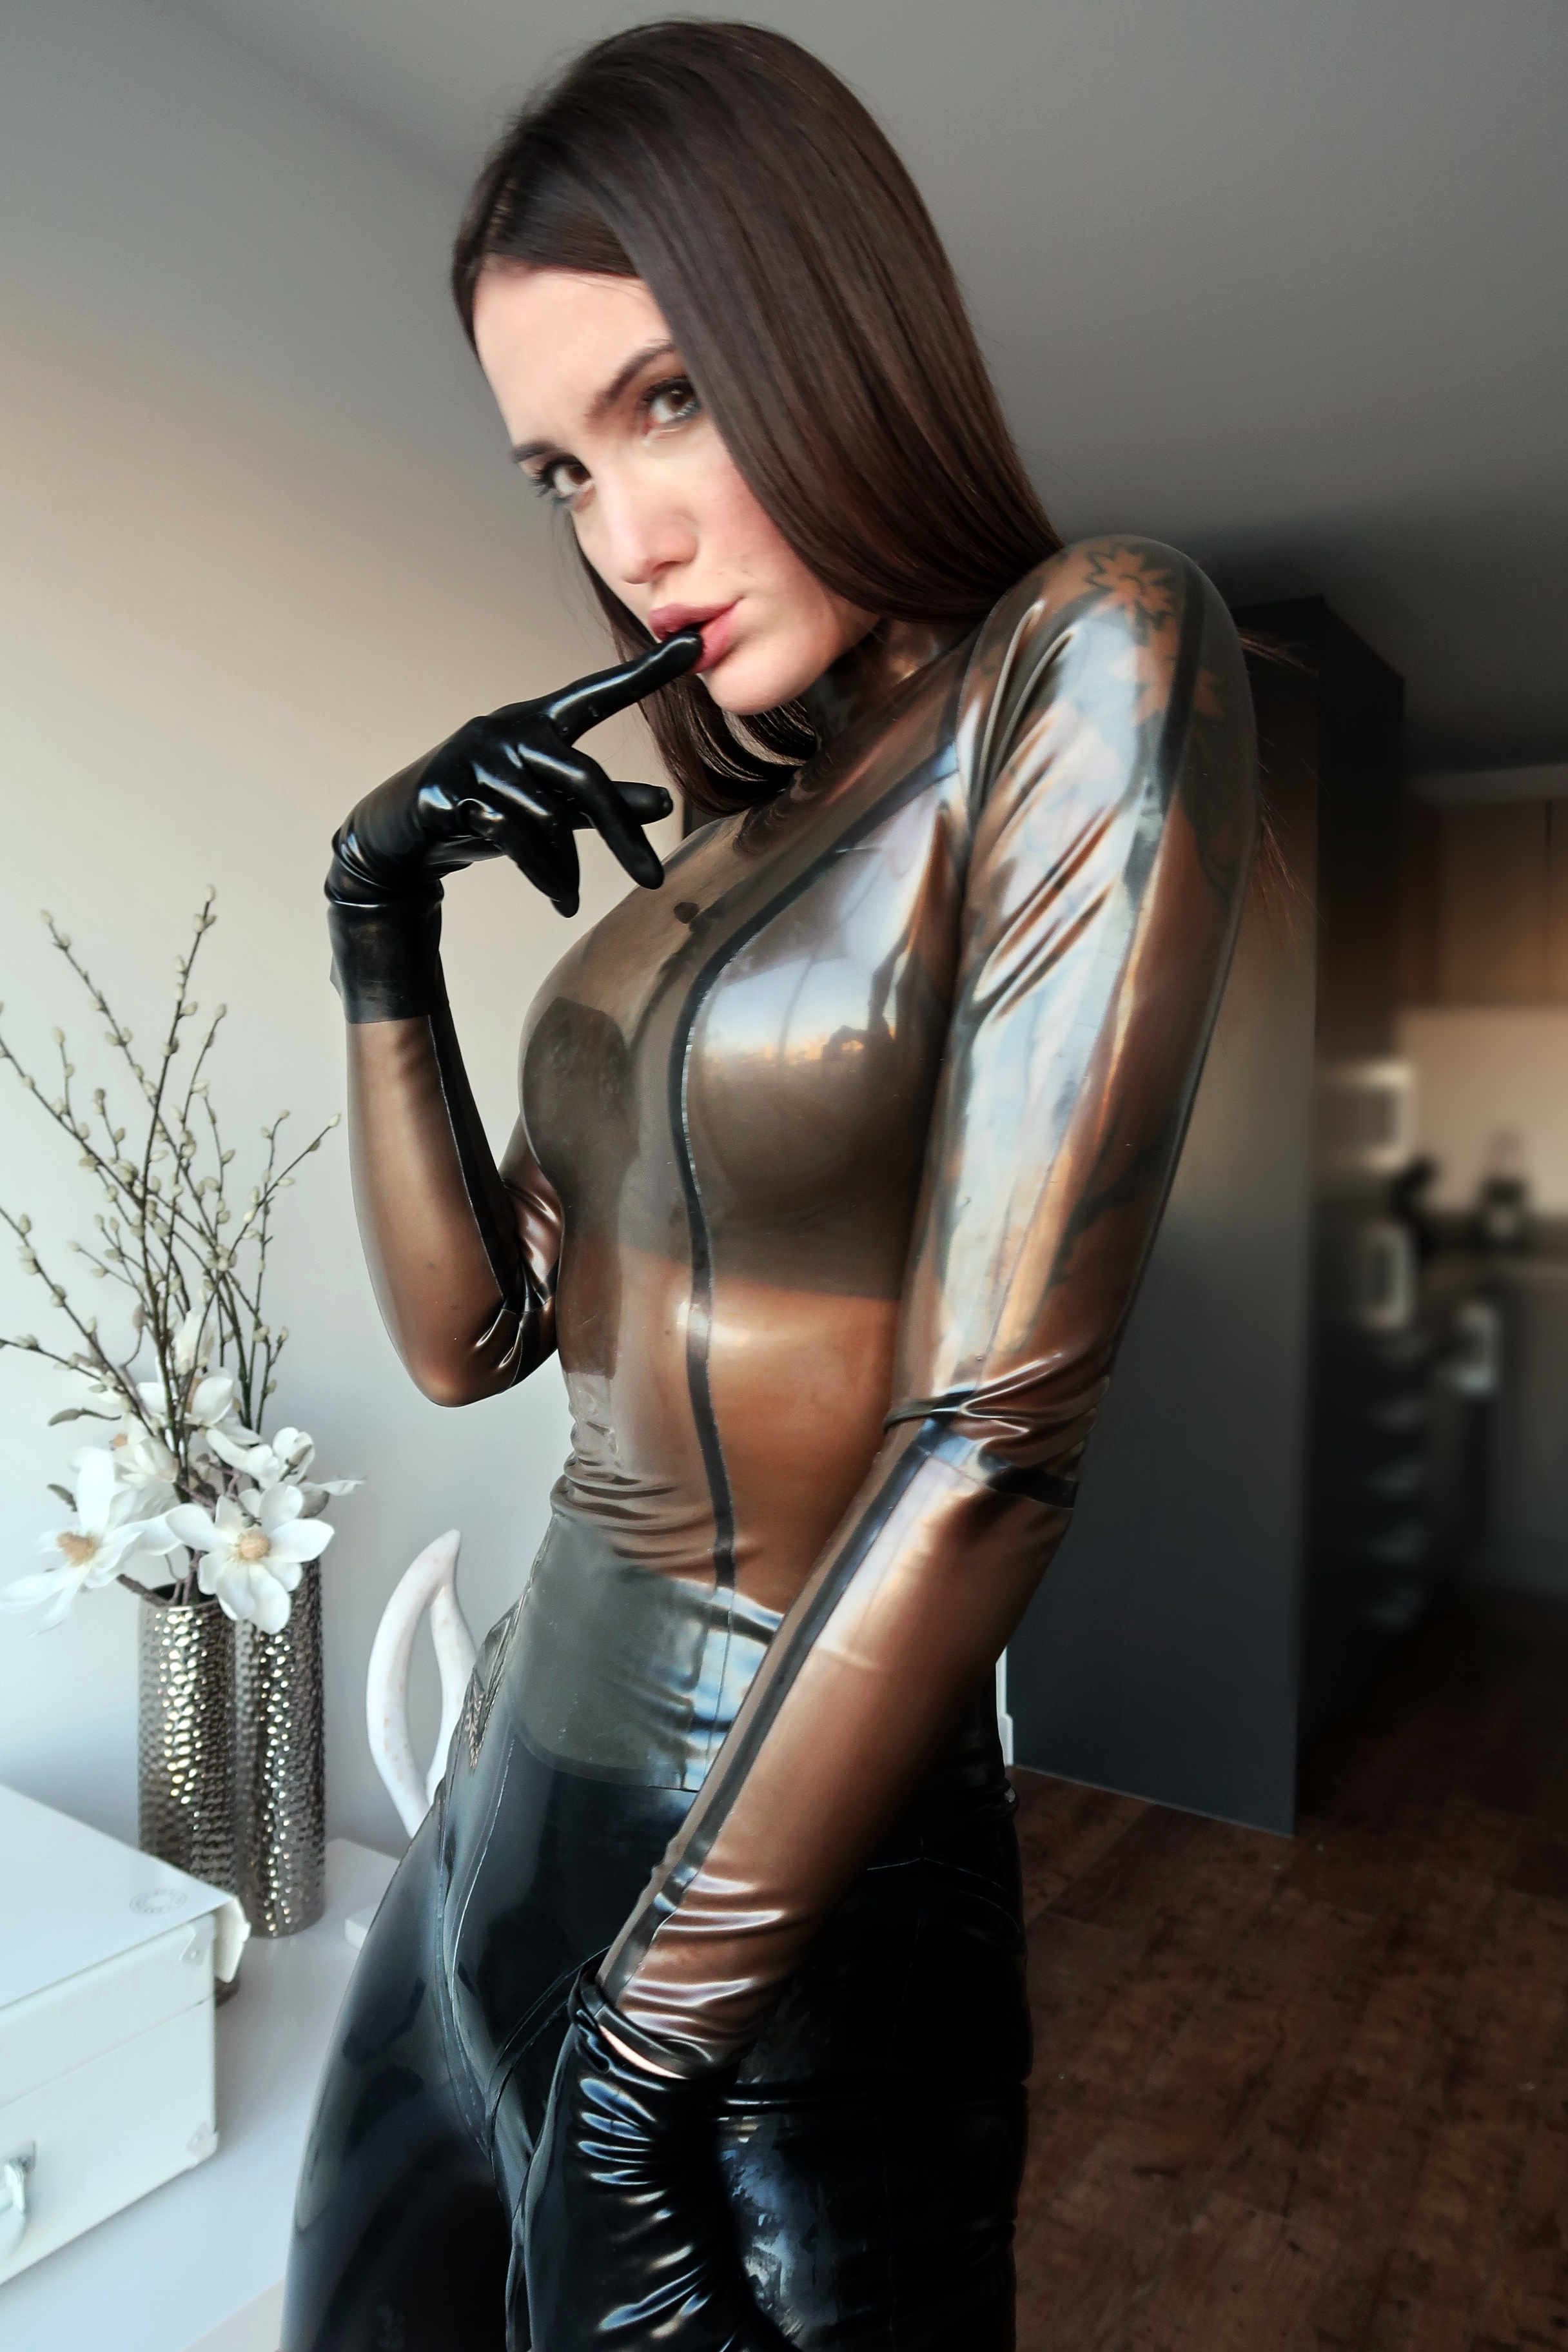 dominatrix gets paid for men to clean her flat